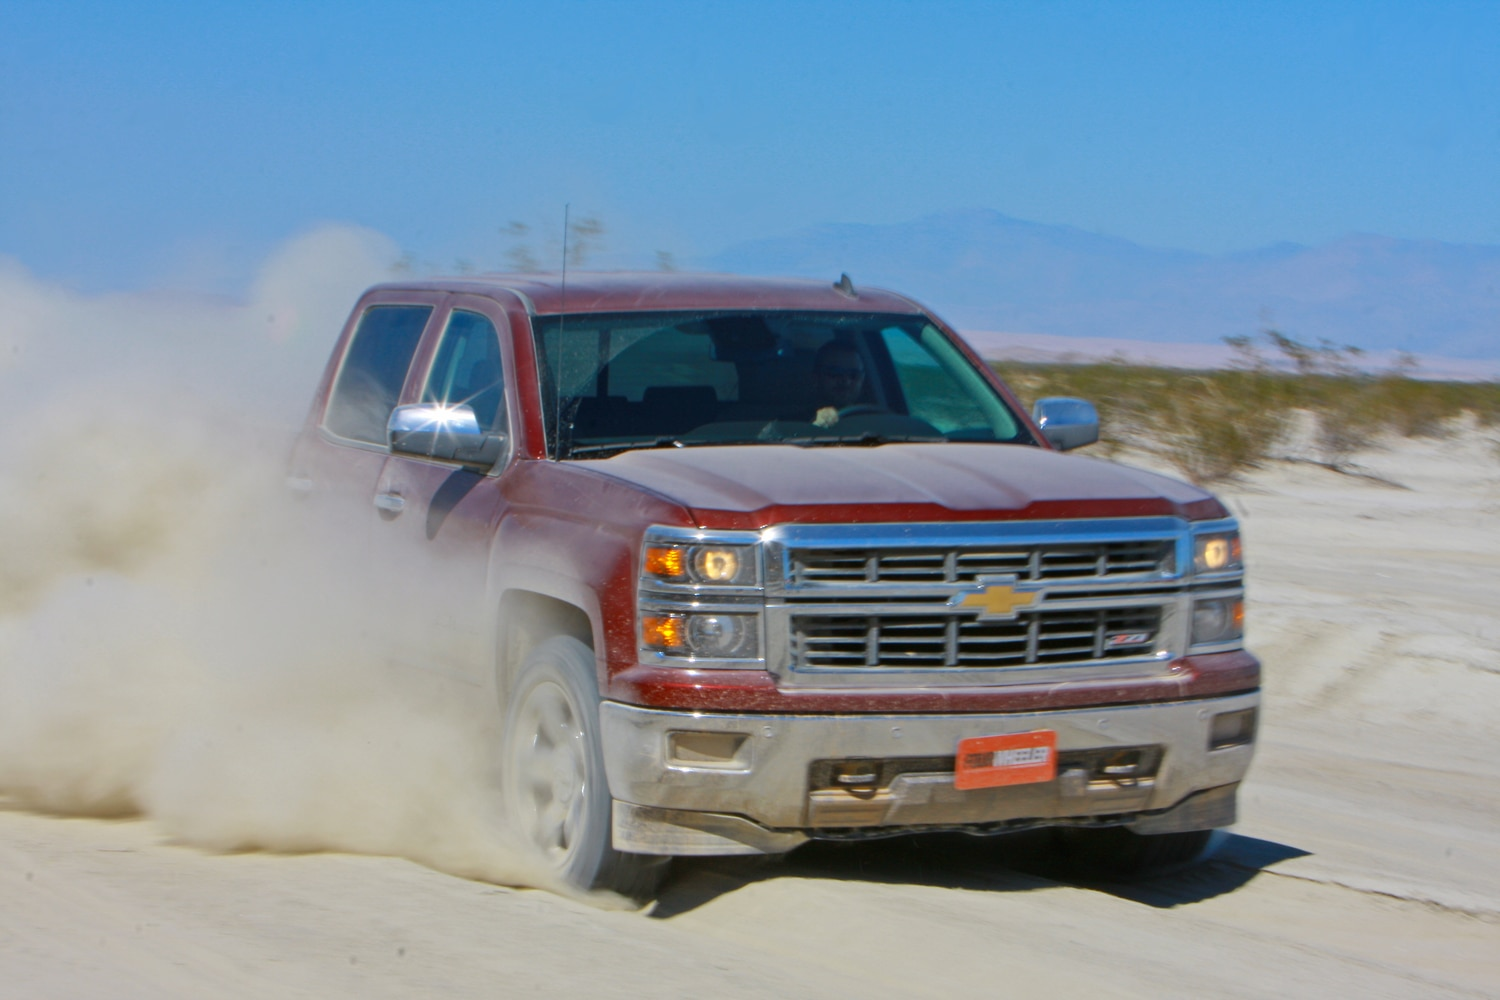 2014 Four Wheeler Of The Year Day 4 Silt Bed   6  2014 Chevy Silverado Z71 exiting silt bed.JPG